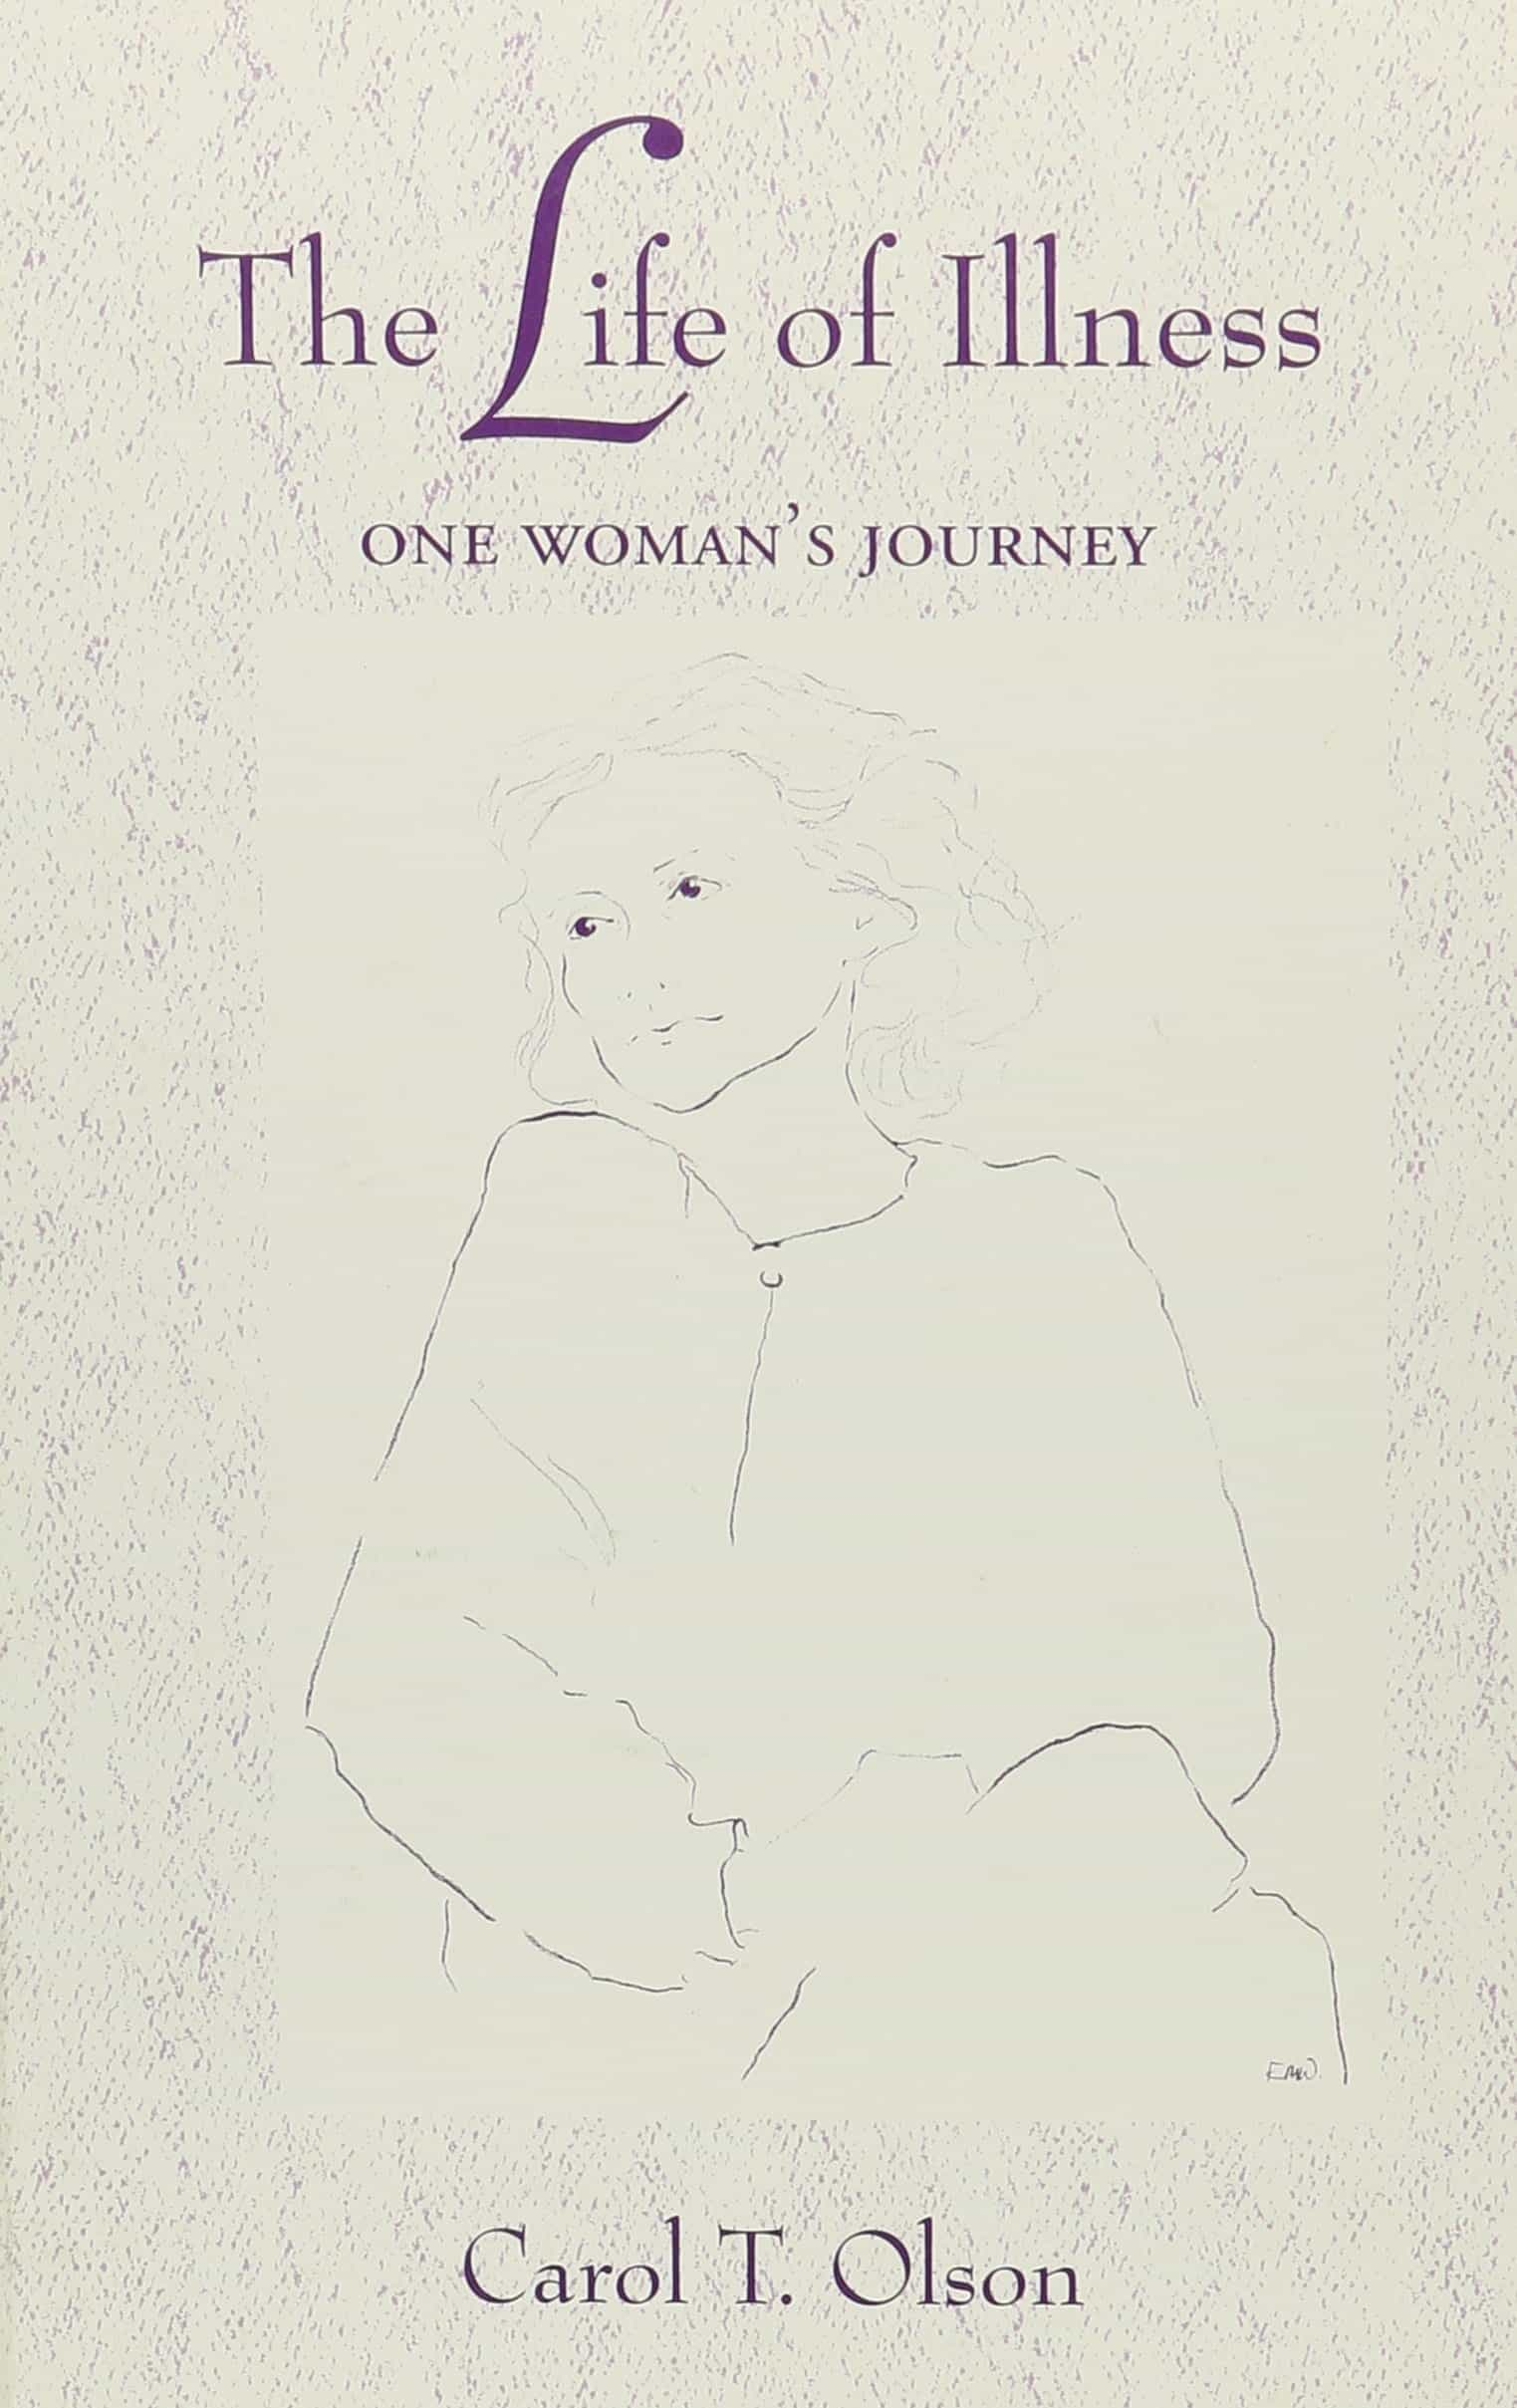 The Life of Illness: One Woman's Journey (S U N Y SERIES, THE BODY IN CULTURE, HISTORY, AND RELIGION)